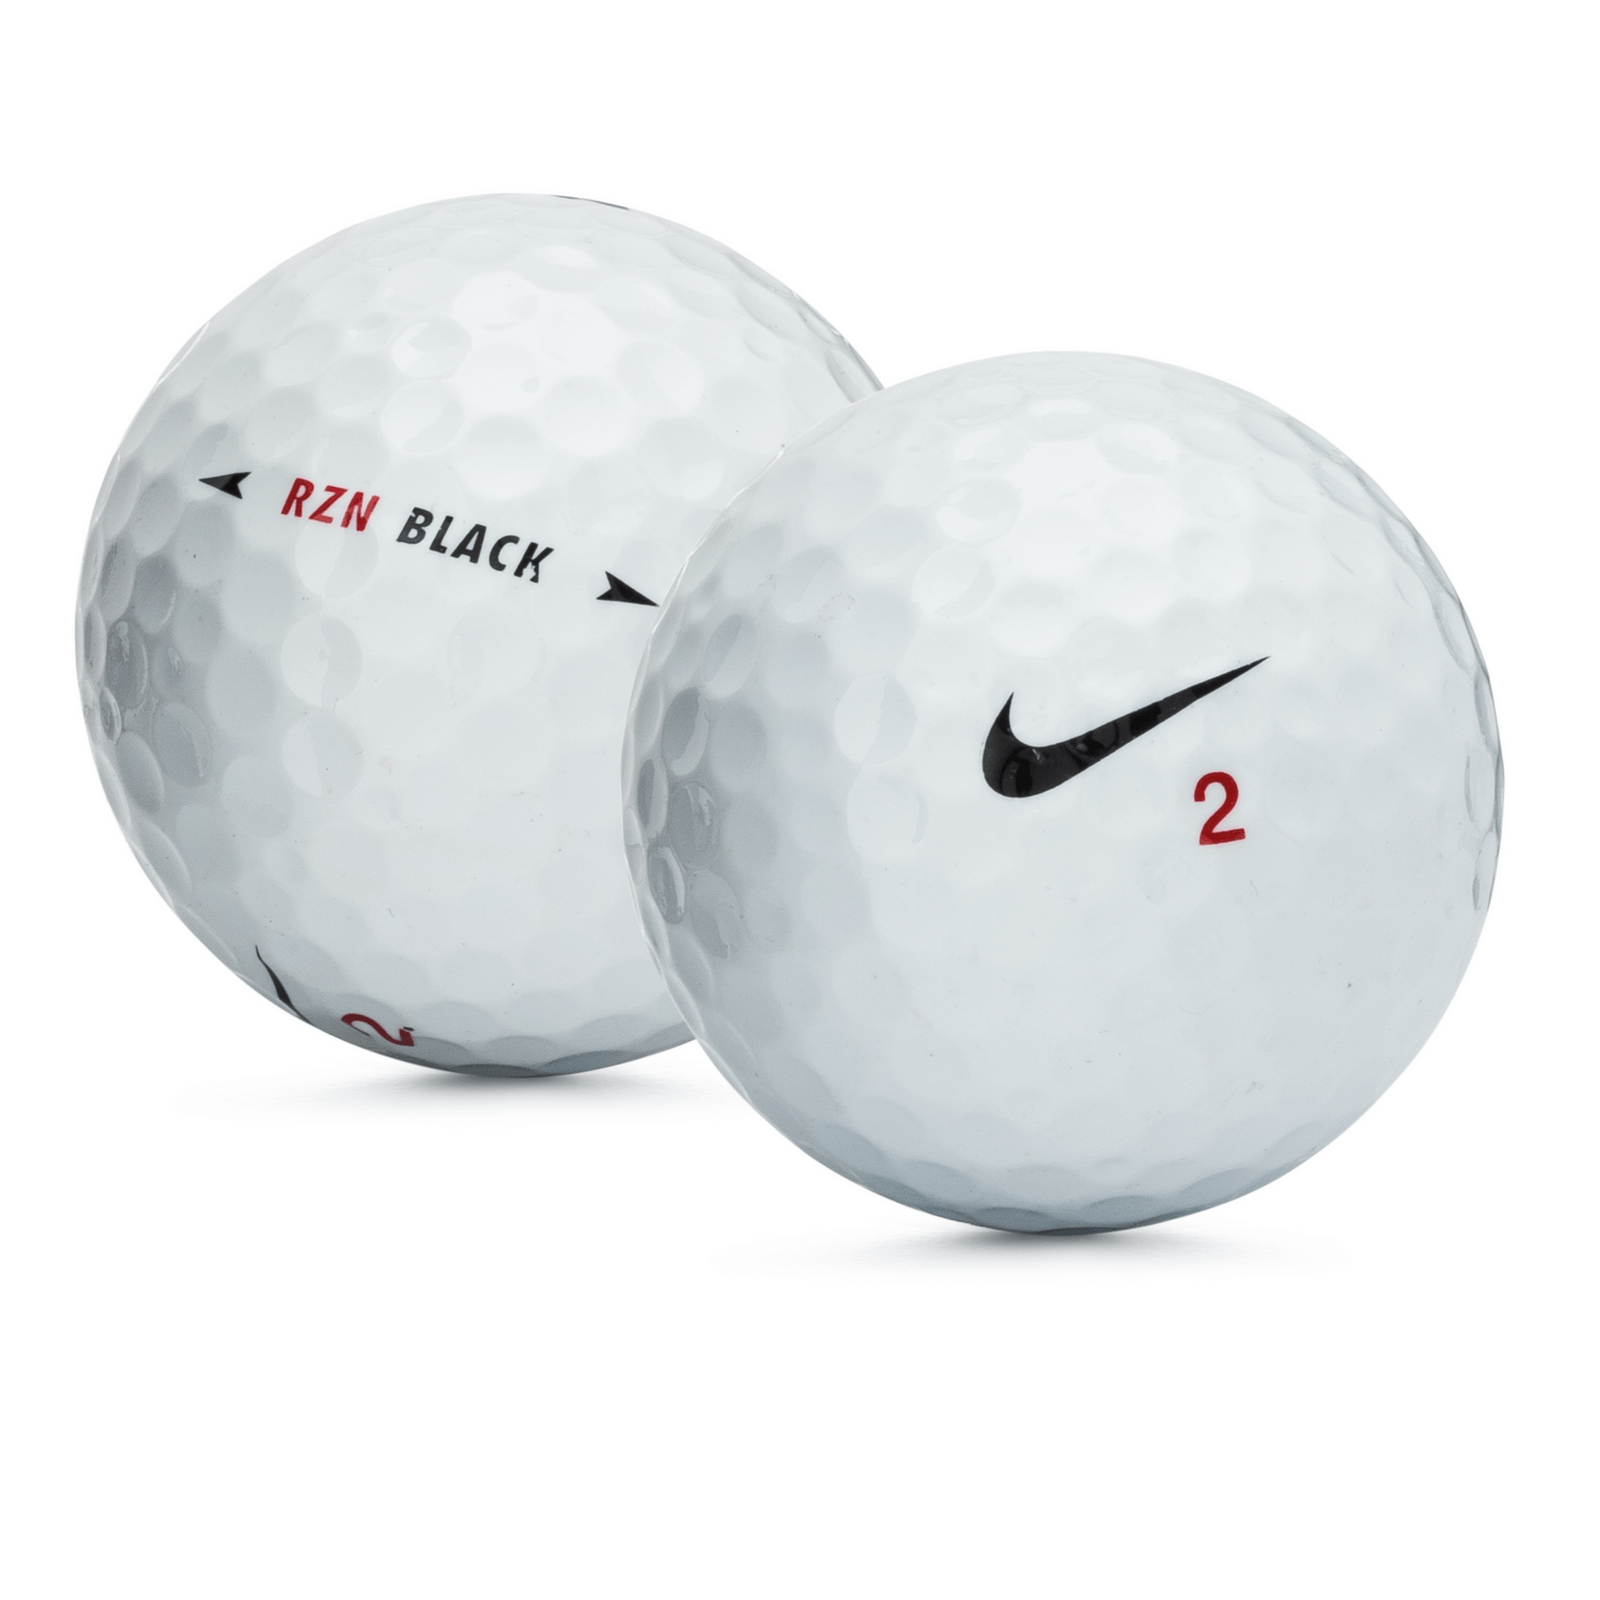 Nike Rzn Black >> Details About 48 Nike Rzn Black Used Golf Balls Perfect Mint Aaaaa Free Shipping